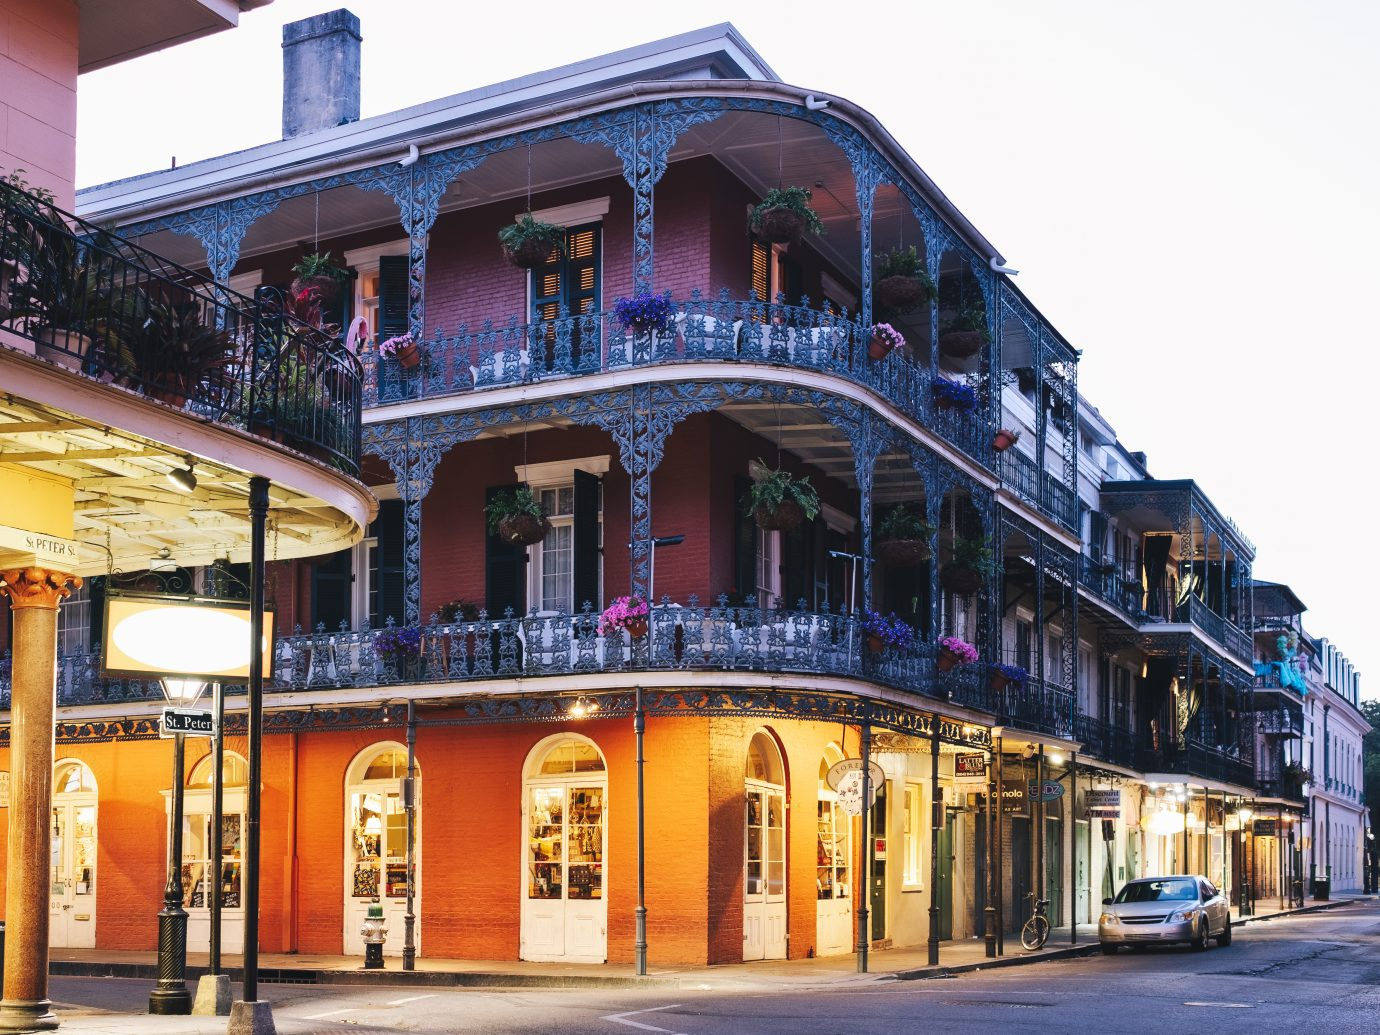 Royal and St Peter streets in French Quarter, New Orleans, Louisiana